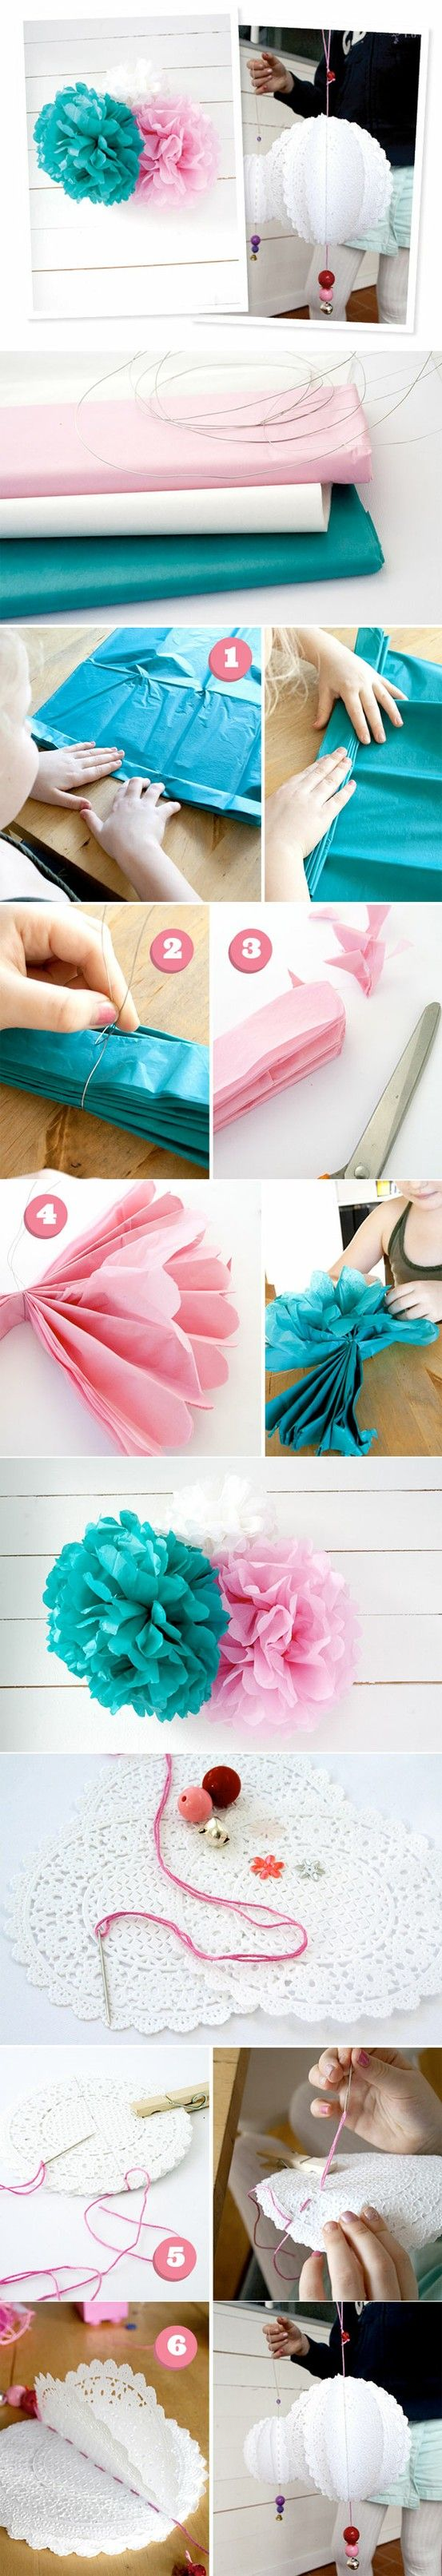 love the idea of plastic tablecloths for the pompoms, then u can use them outside